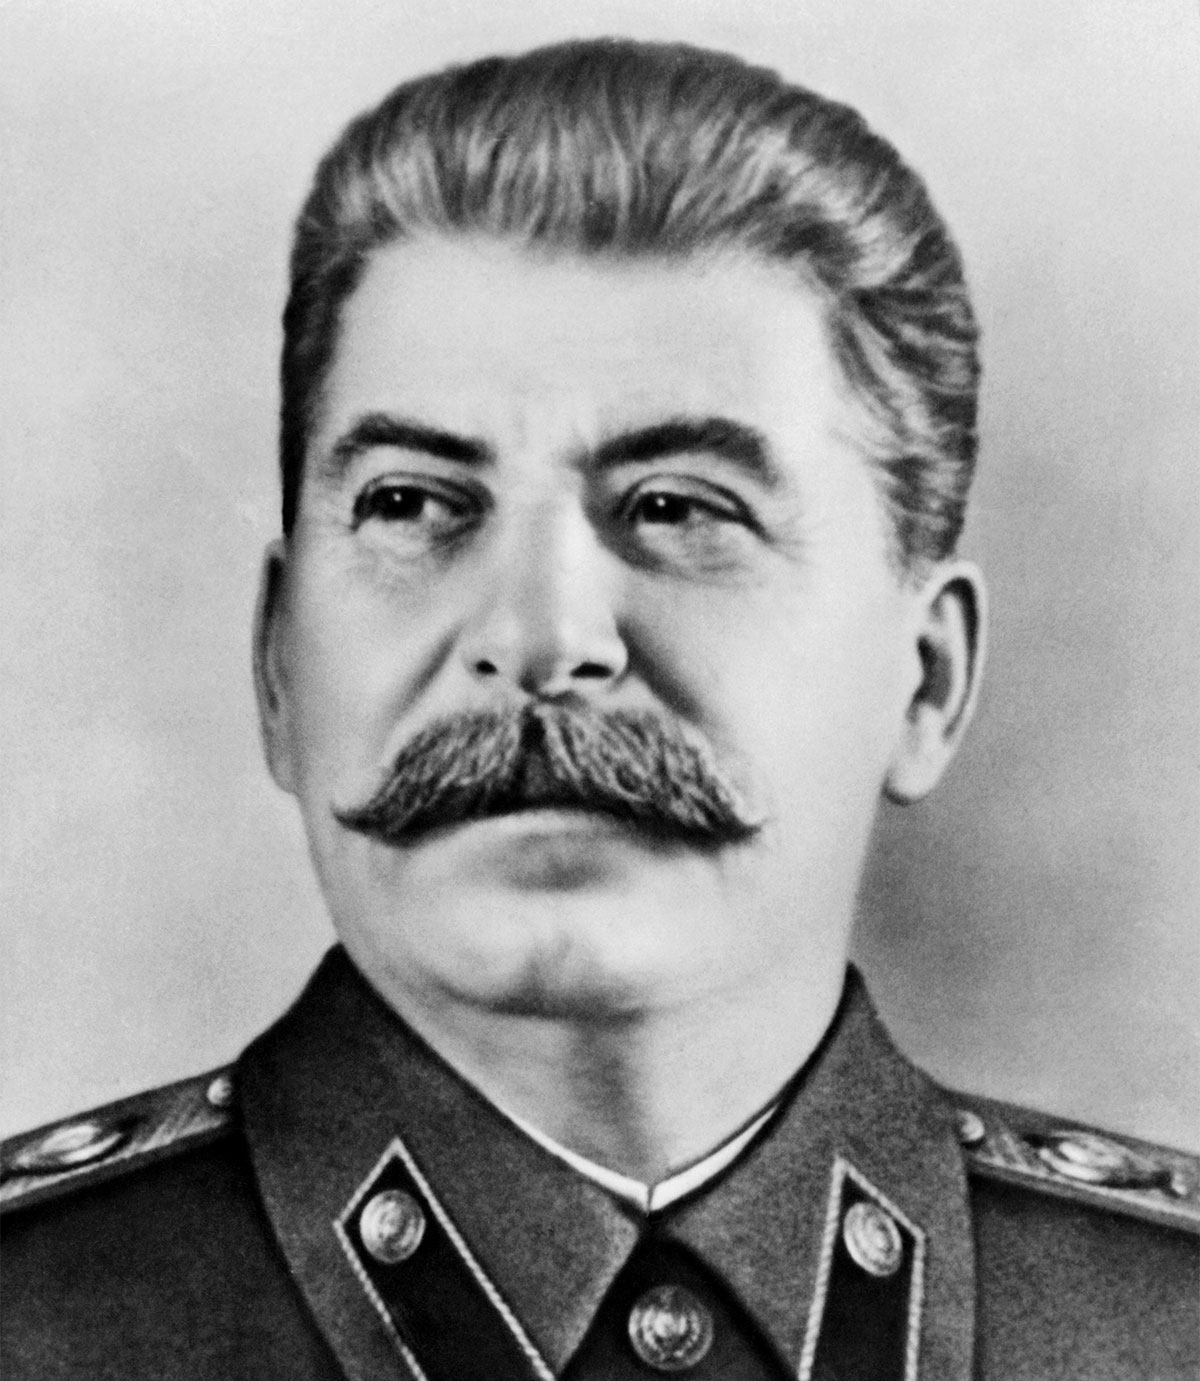 Photograph of Joseph Stalin in high resolution